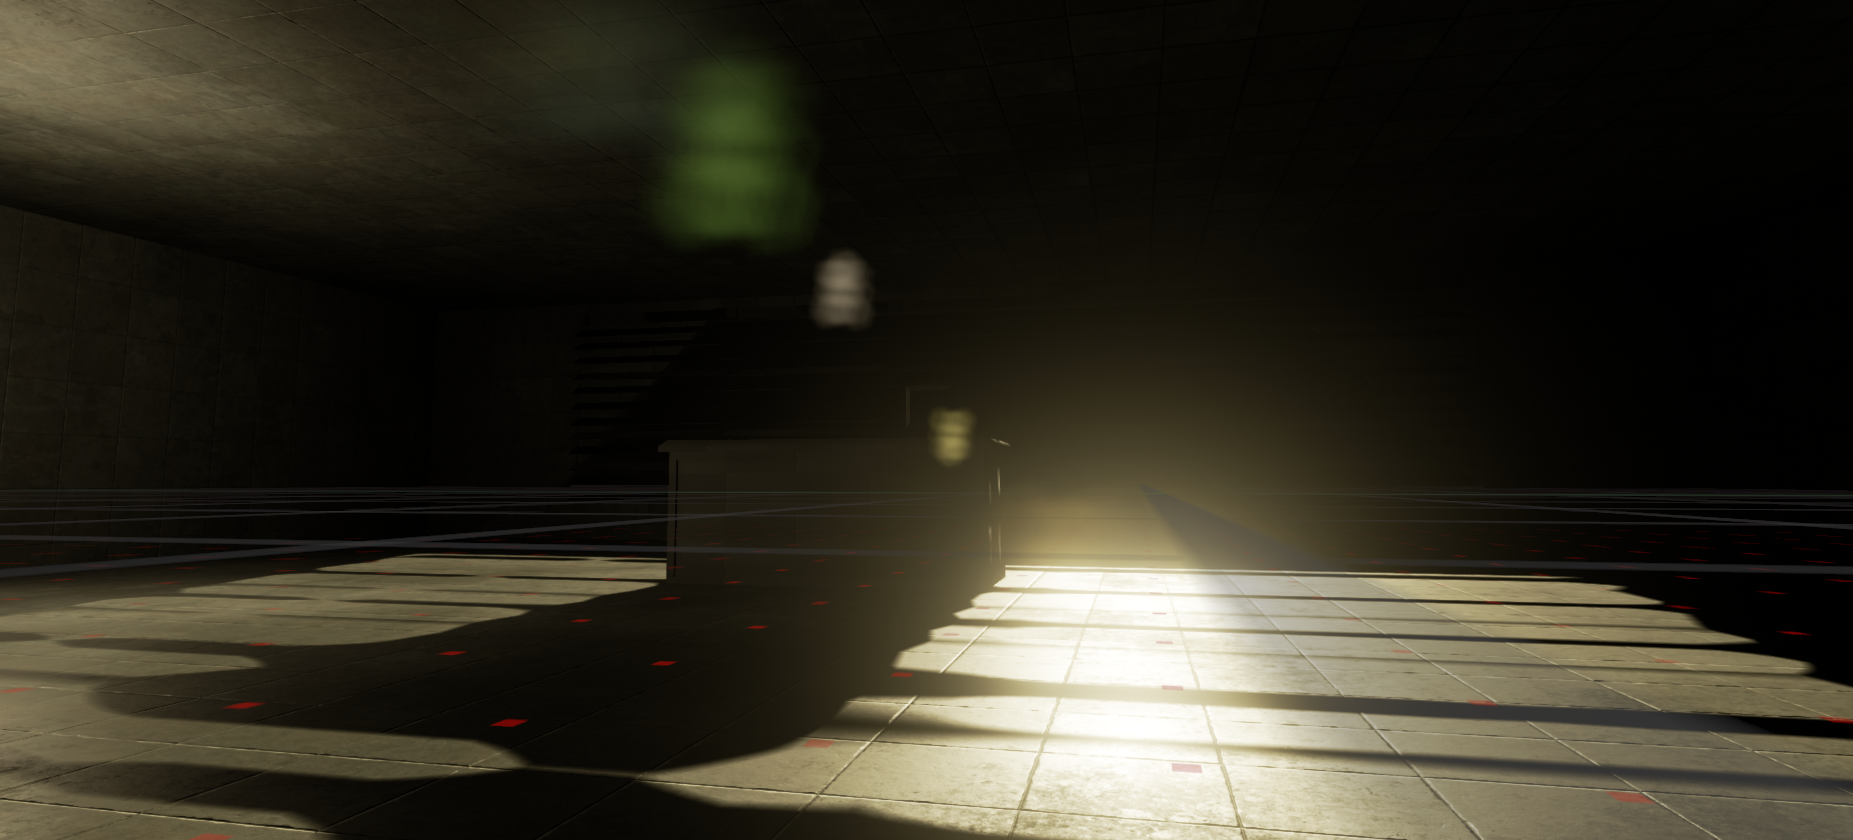 Lighting and level layout